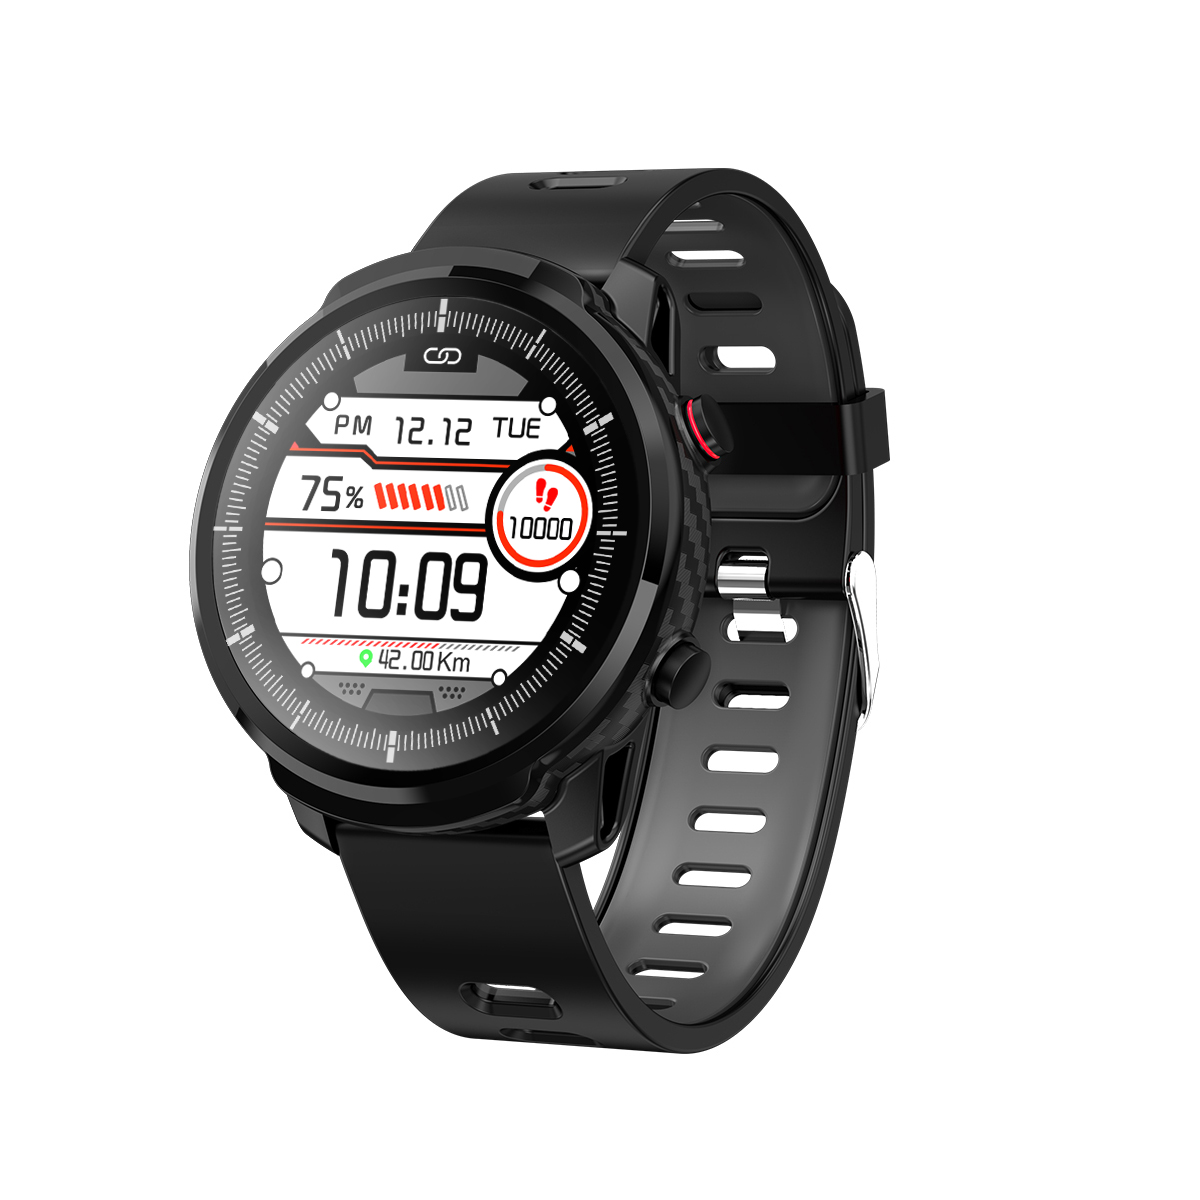 SENBONO S10 Plus Full Touch Screen SPORT Men IP67 Waterproof Heart Rate Blood Pressure Tracker Smartwatch For IOS/Android